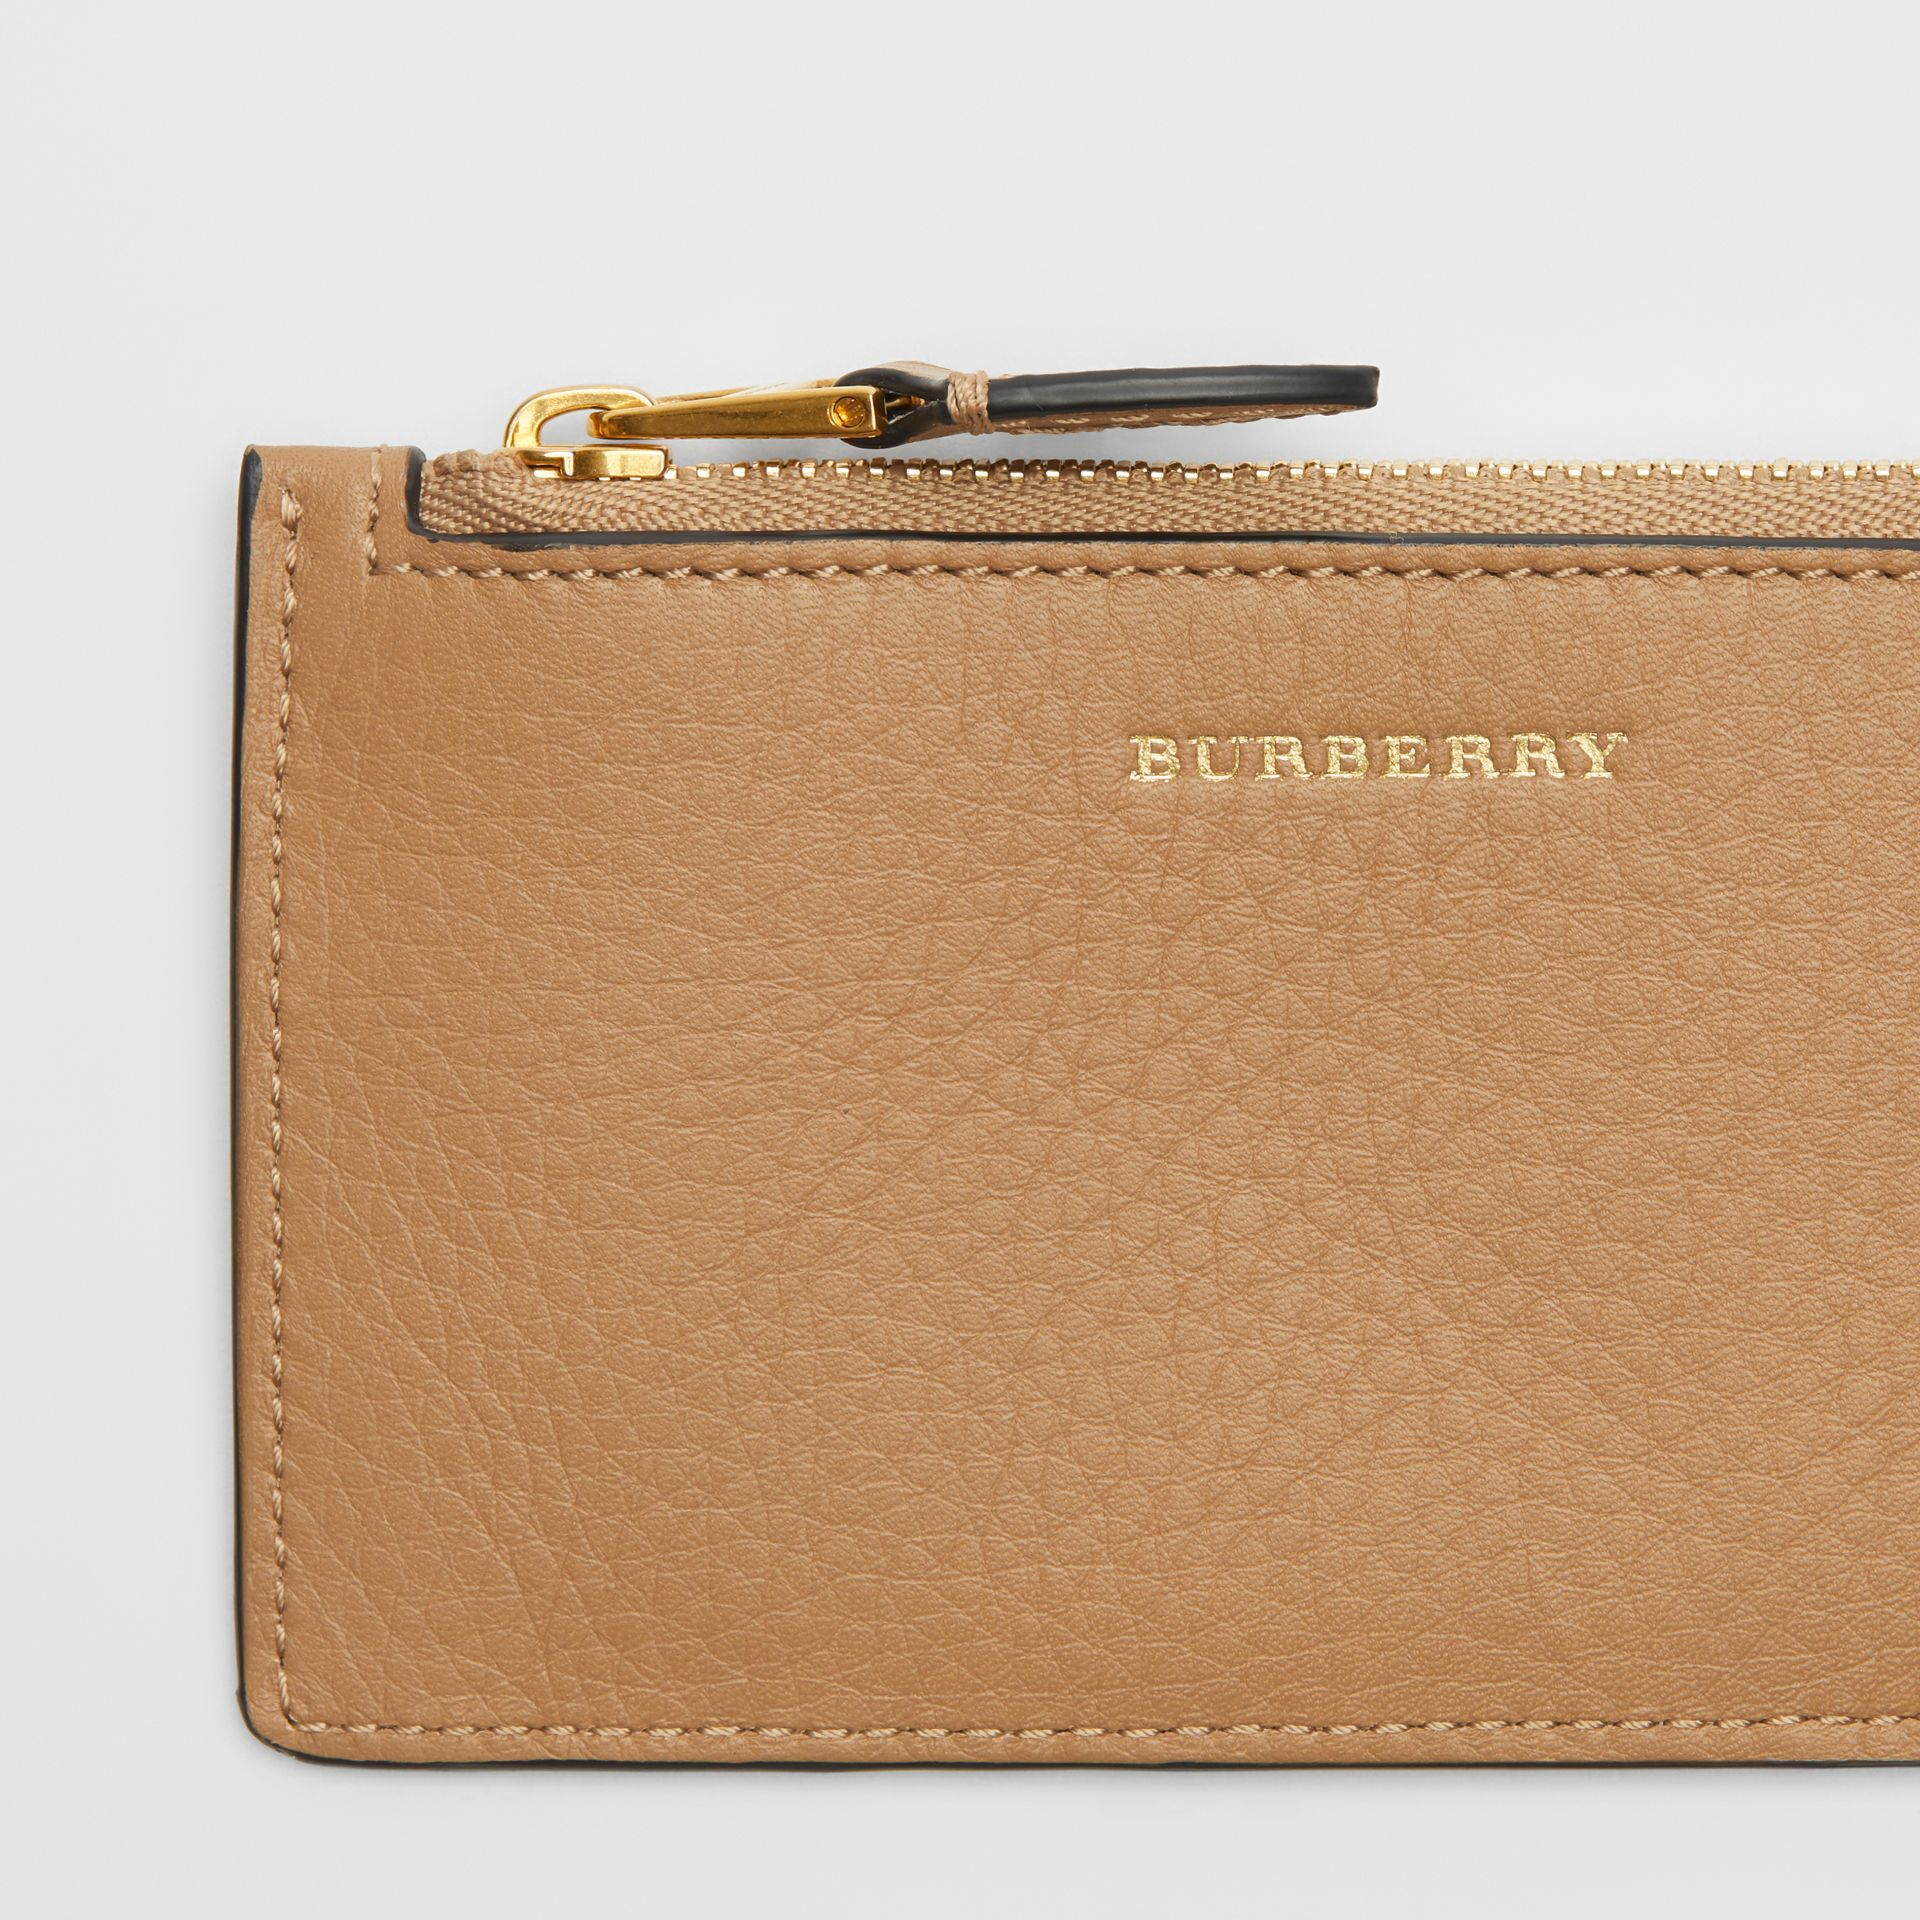 Two-tone Leather Card Case in Light Camel - Women | Burberry Singapore - gallery image 1